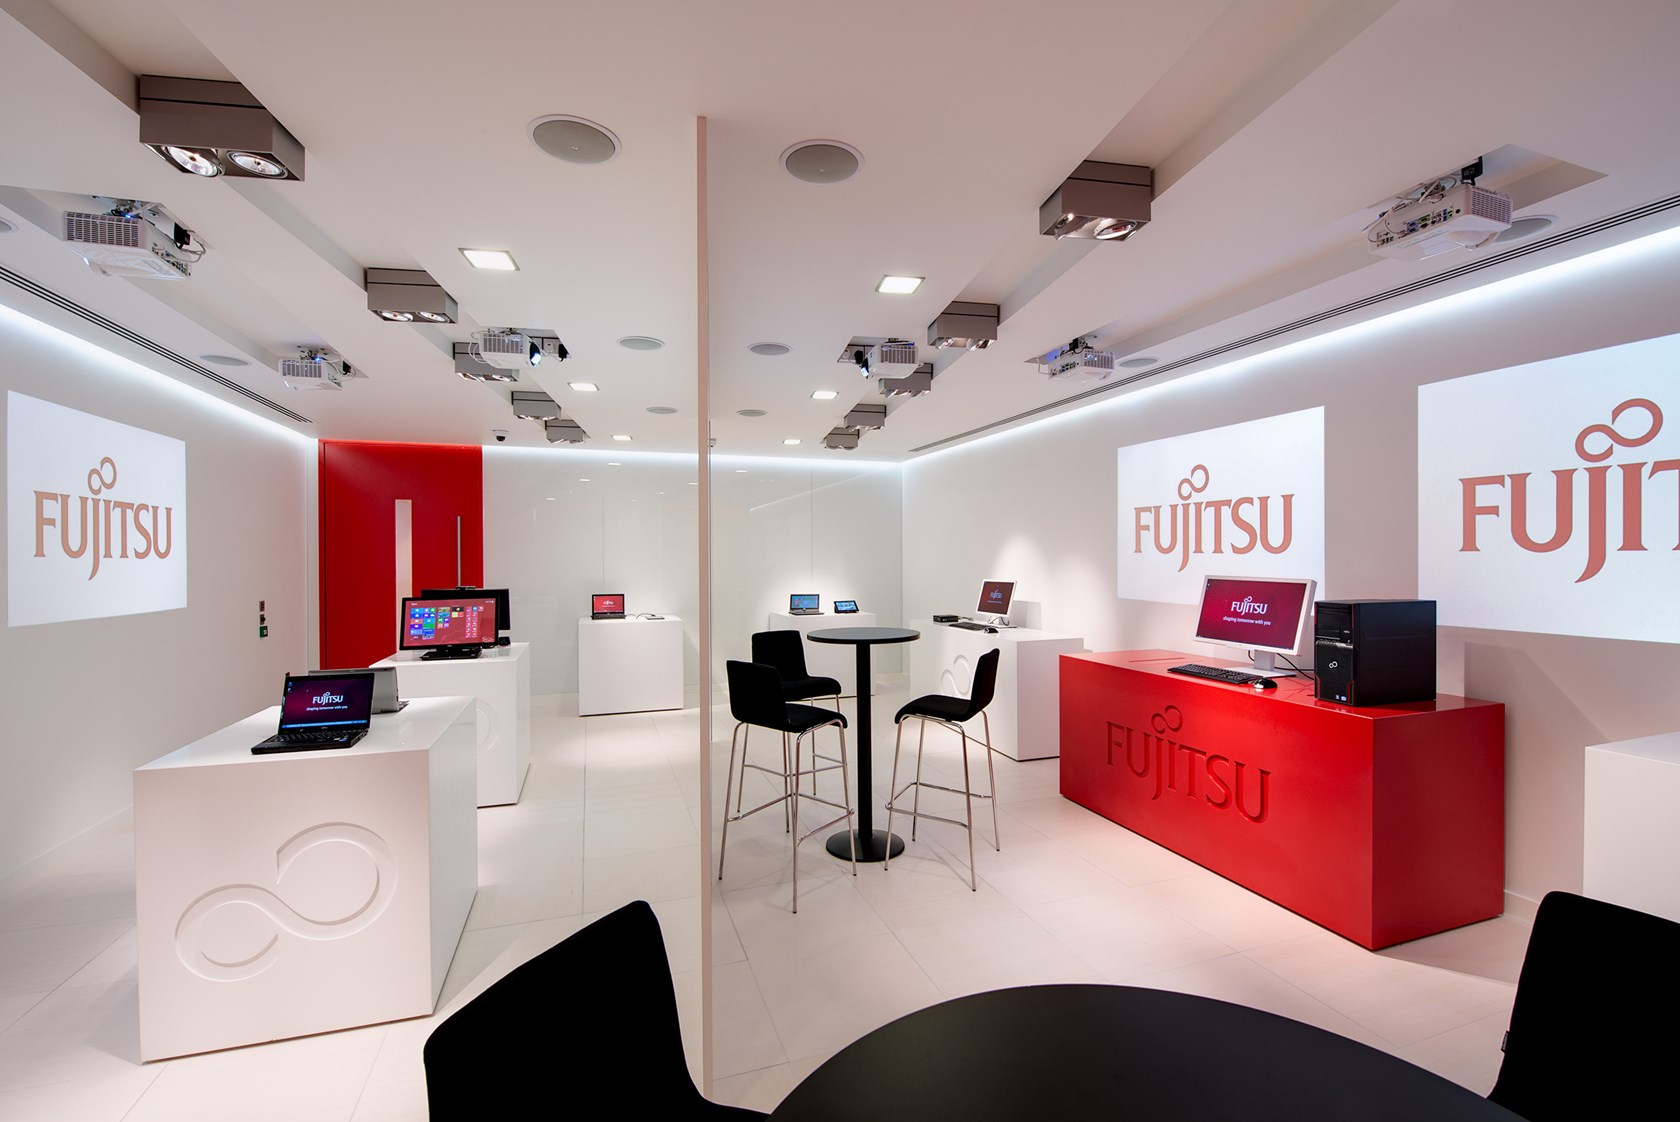 For the second time, Fujitsu hosts a HYPE Regional Innovation Managers Forum